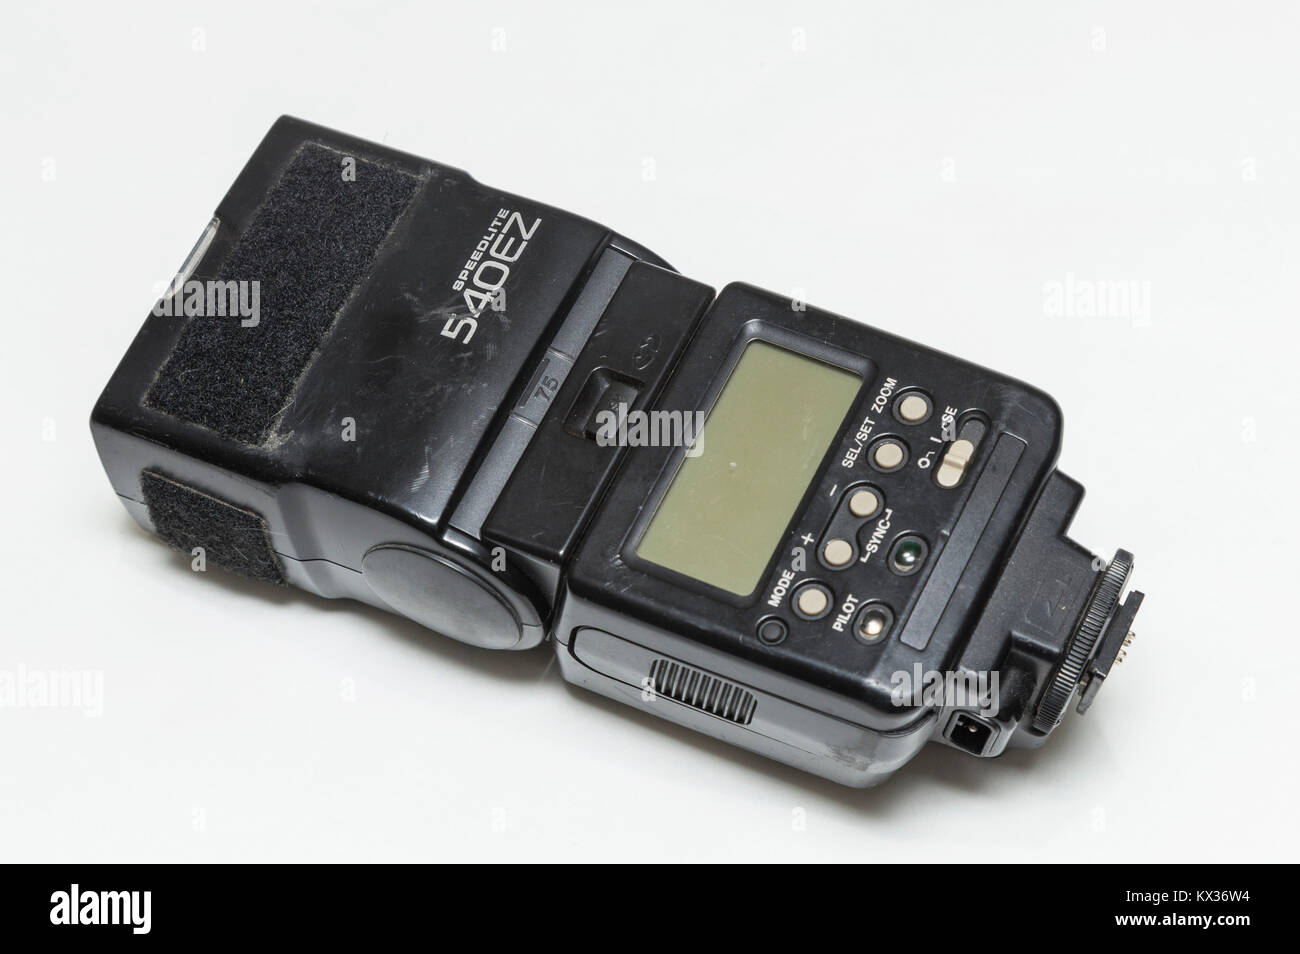 Canon speedlite flash gun, old, battered, scratched, tatty and heavily worn. Old photographic equipment. - Stock Image